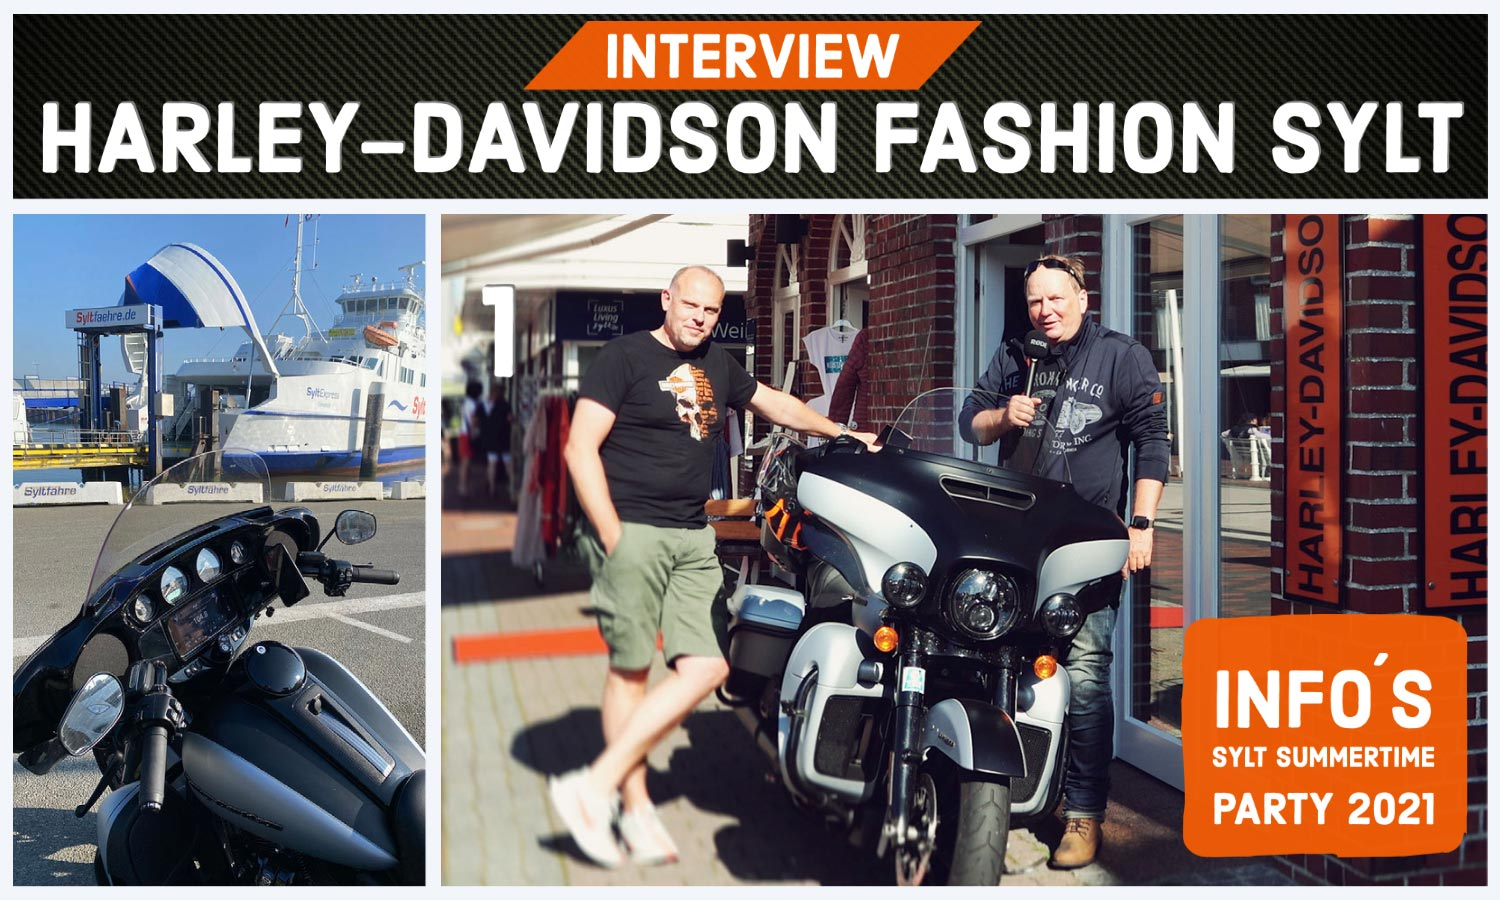 Interview mit Michael Knote und Harleysite - HARLEY-DAVIDSON FASHION SYLT & INFOS ZUR SYLT SUMMERTIME-PARTY 2021